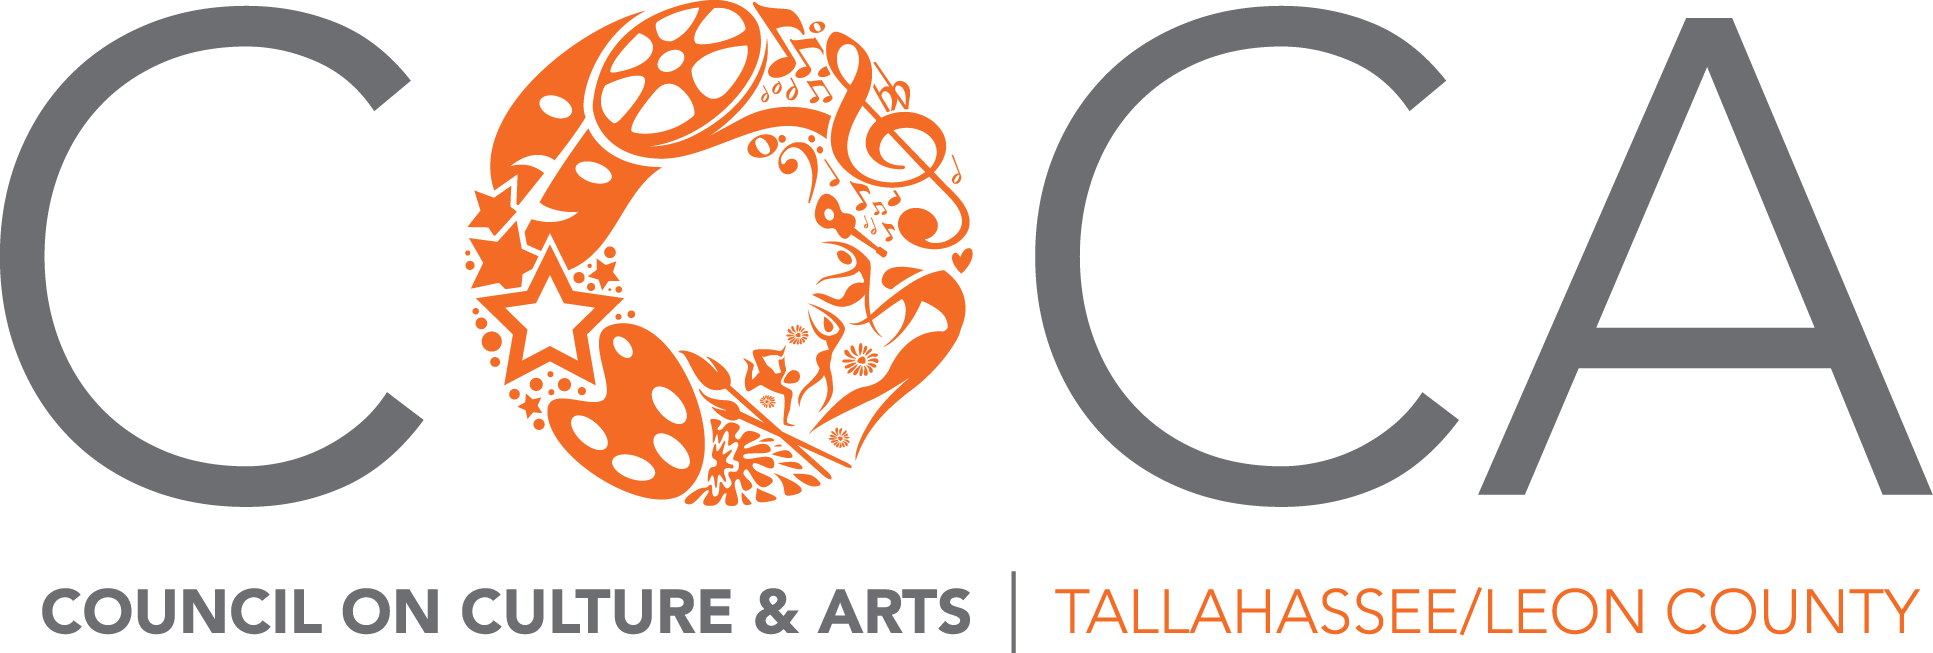 COCA_Tallahassee_Logo_Color.png